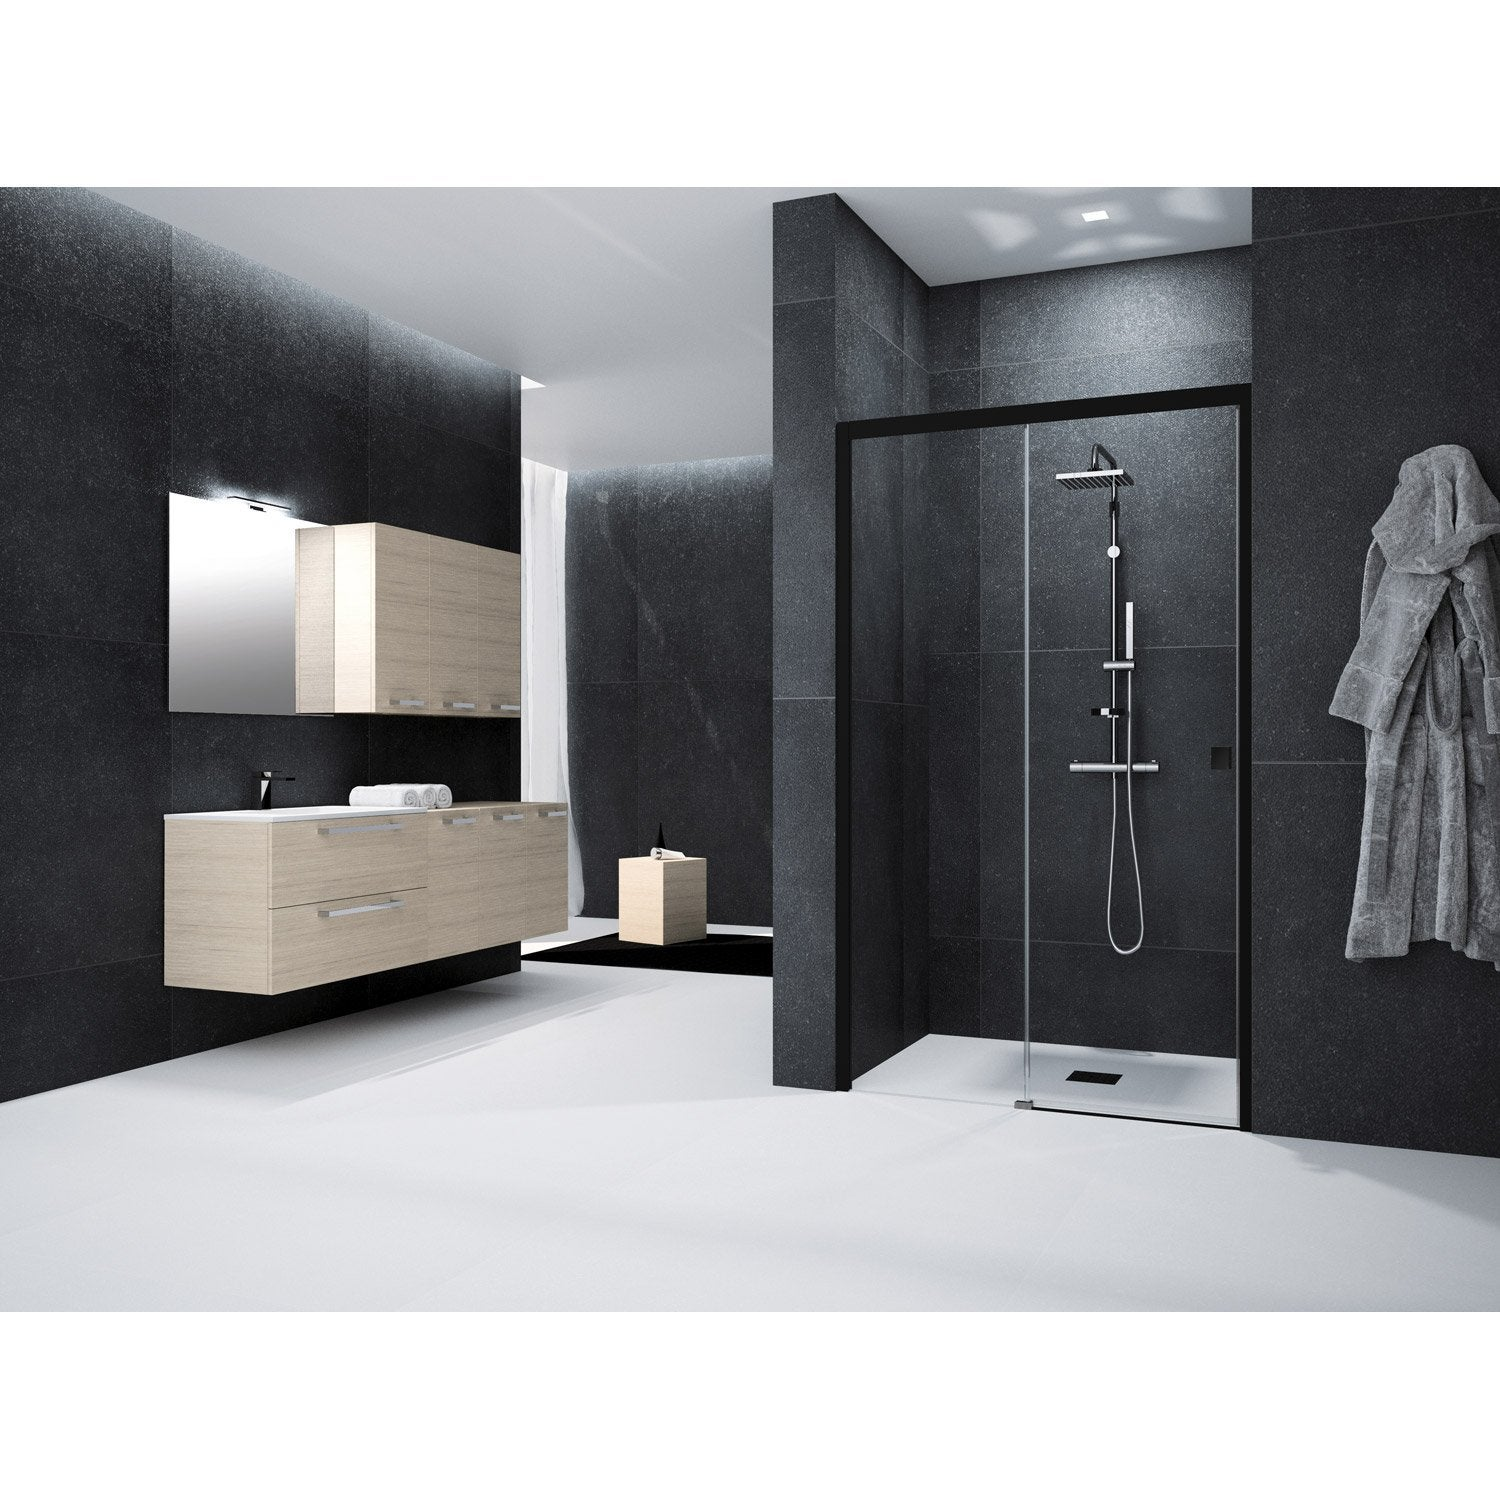 porte de douche coulissante 120 cm transparent neo. Black Bedroom Furniture Sets. Home Design Ideas